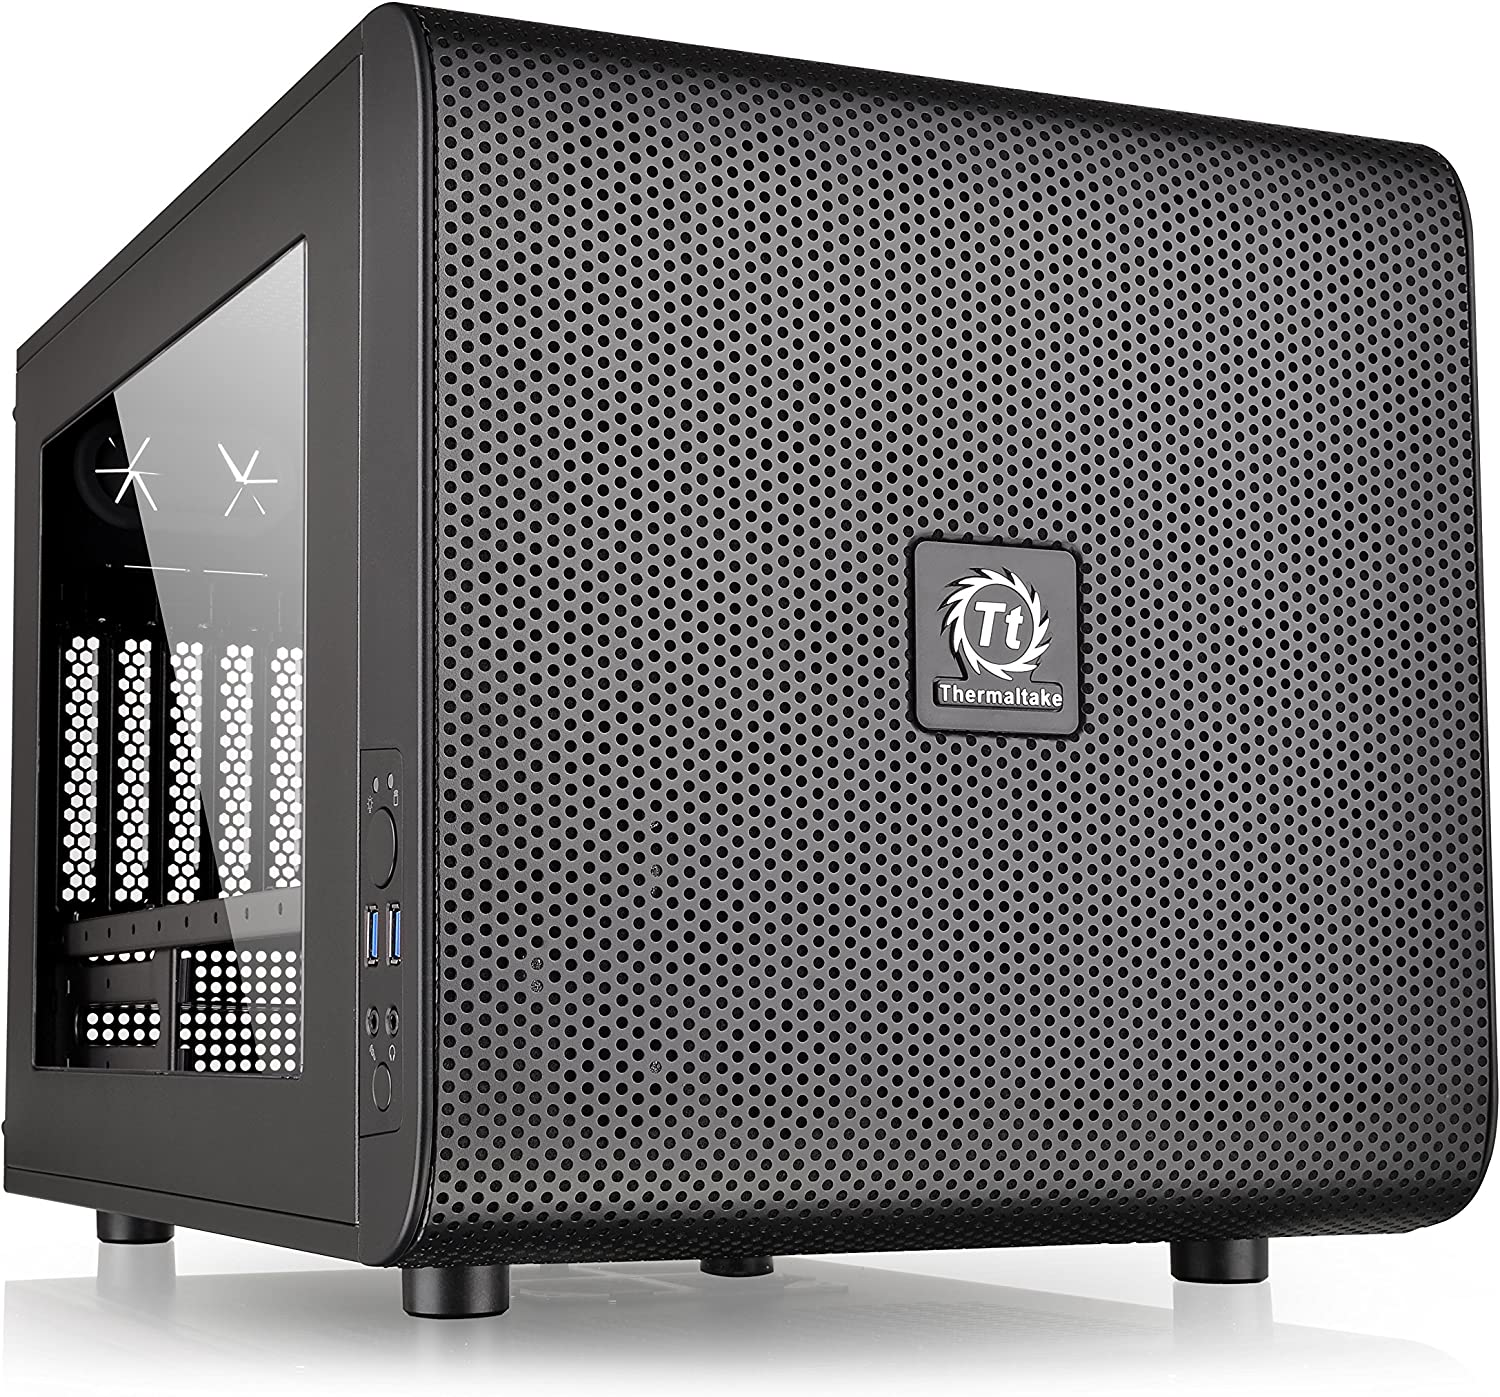 8 Smallest Micro ATX Cases in 2021 (Reviews & Buyer's Guide)